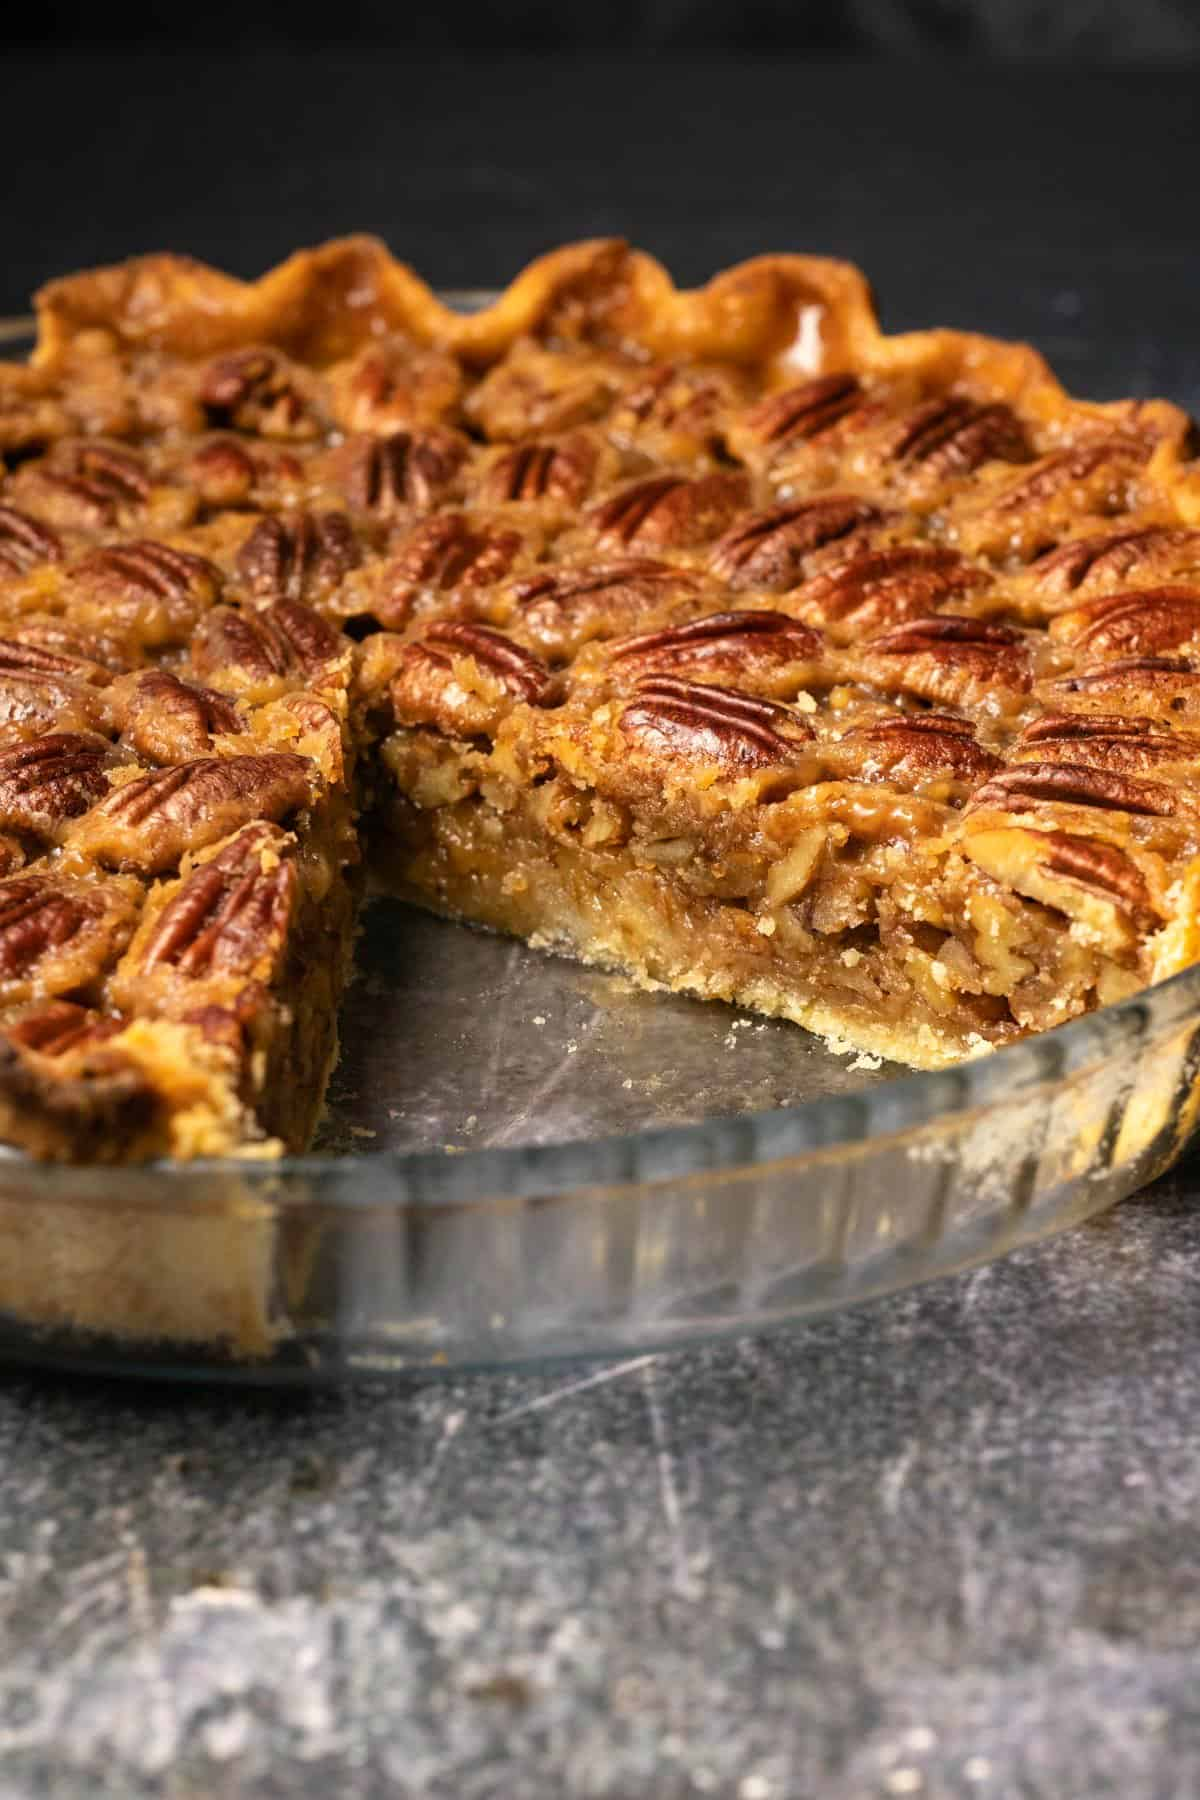 Vegan pecan pie in a glass dish with one slice missing.